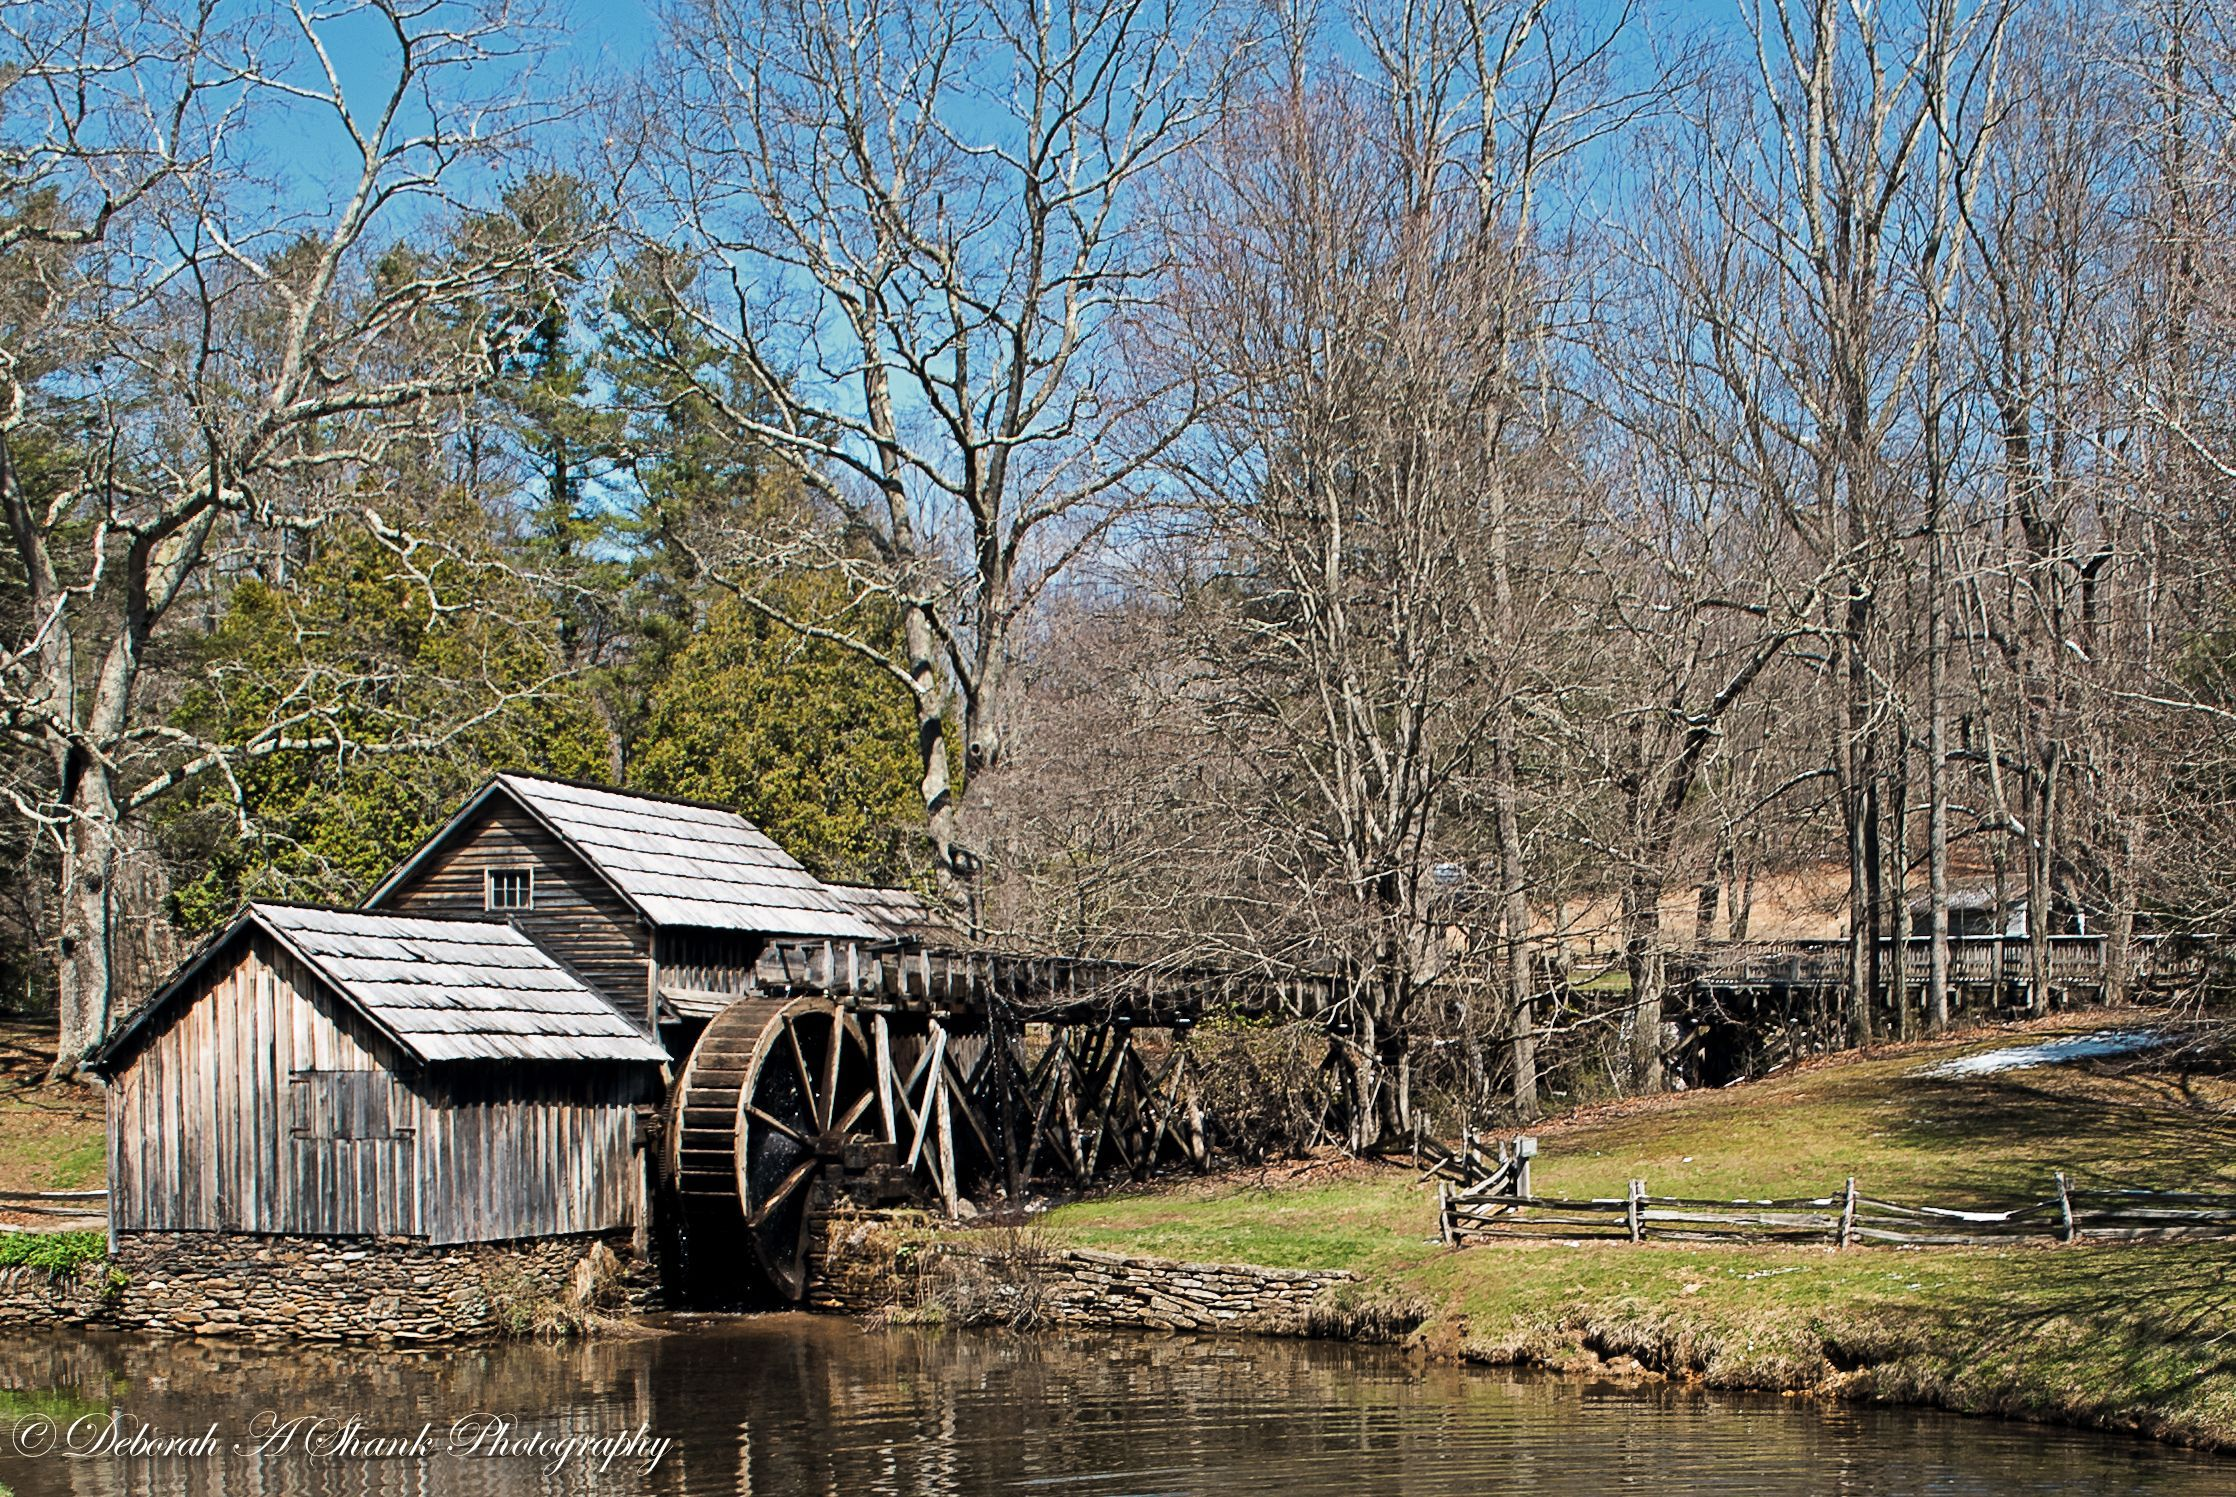 Mabry Mill on the Blueridge Parkway in Virginia. #blueridgeparkway Mabry Mill on the Blueridge Parkway in Virginia. #blueridgeparkway